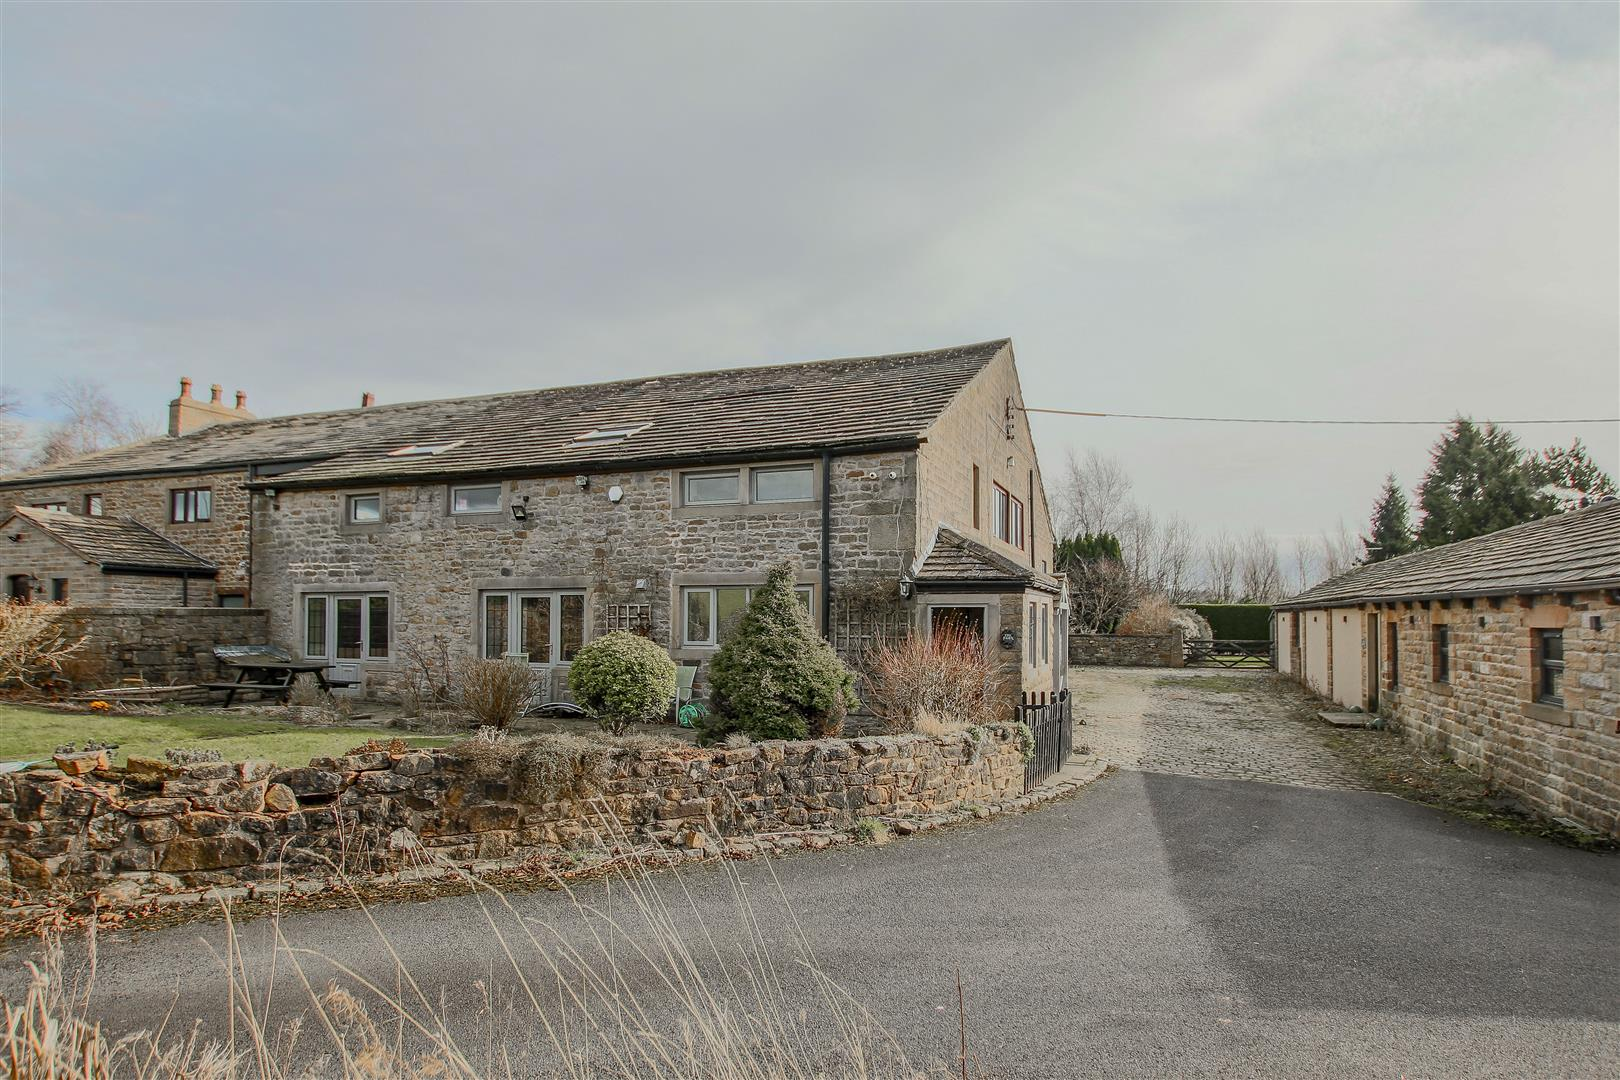 6 Bedroom Barn Conversion For Sale - Main Image